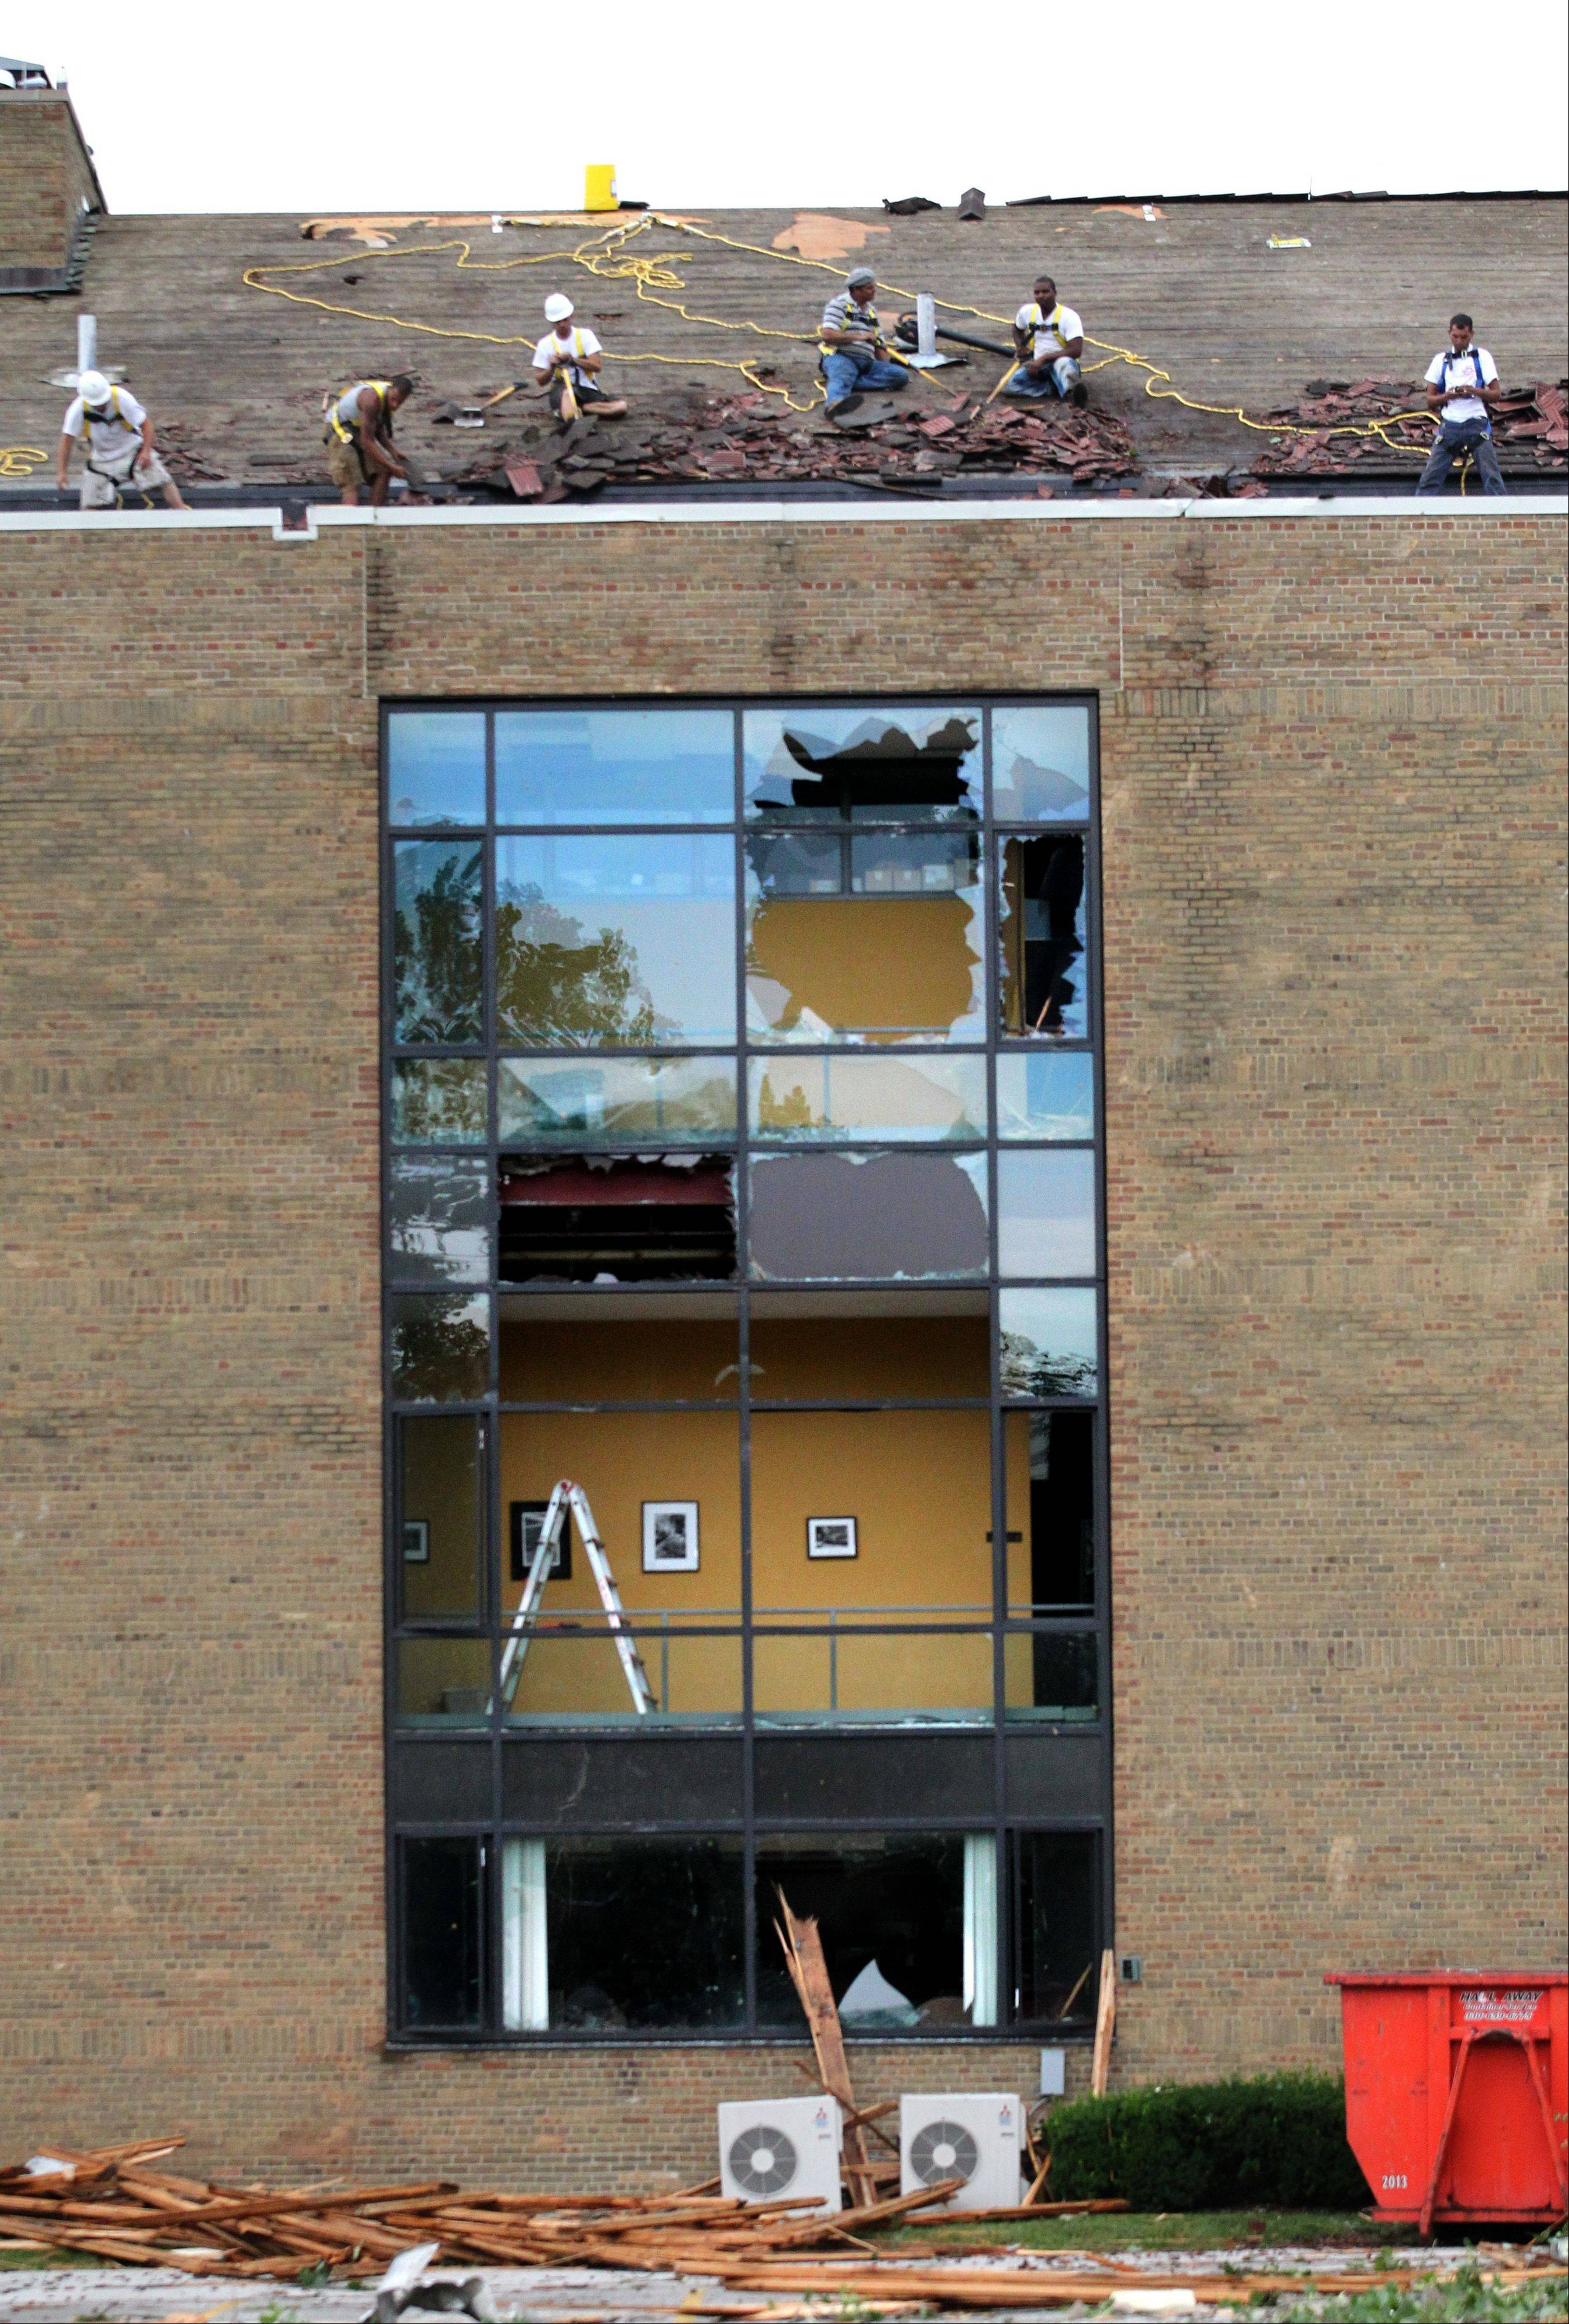 Workers remove debris Saturday from the roof of the O�Brien Athletic Center on the campus of Ursuline College in Pepper Pike, Ohio.